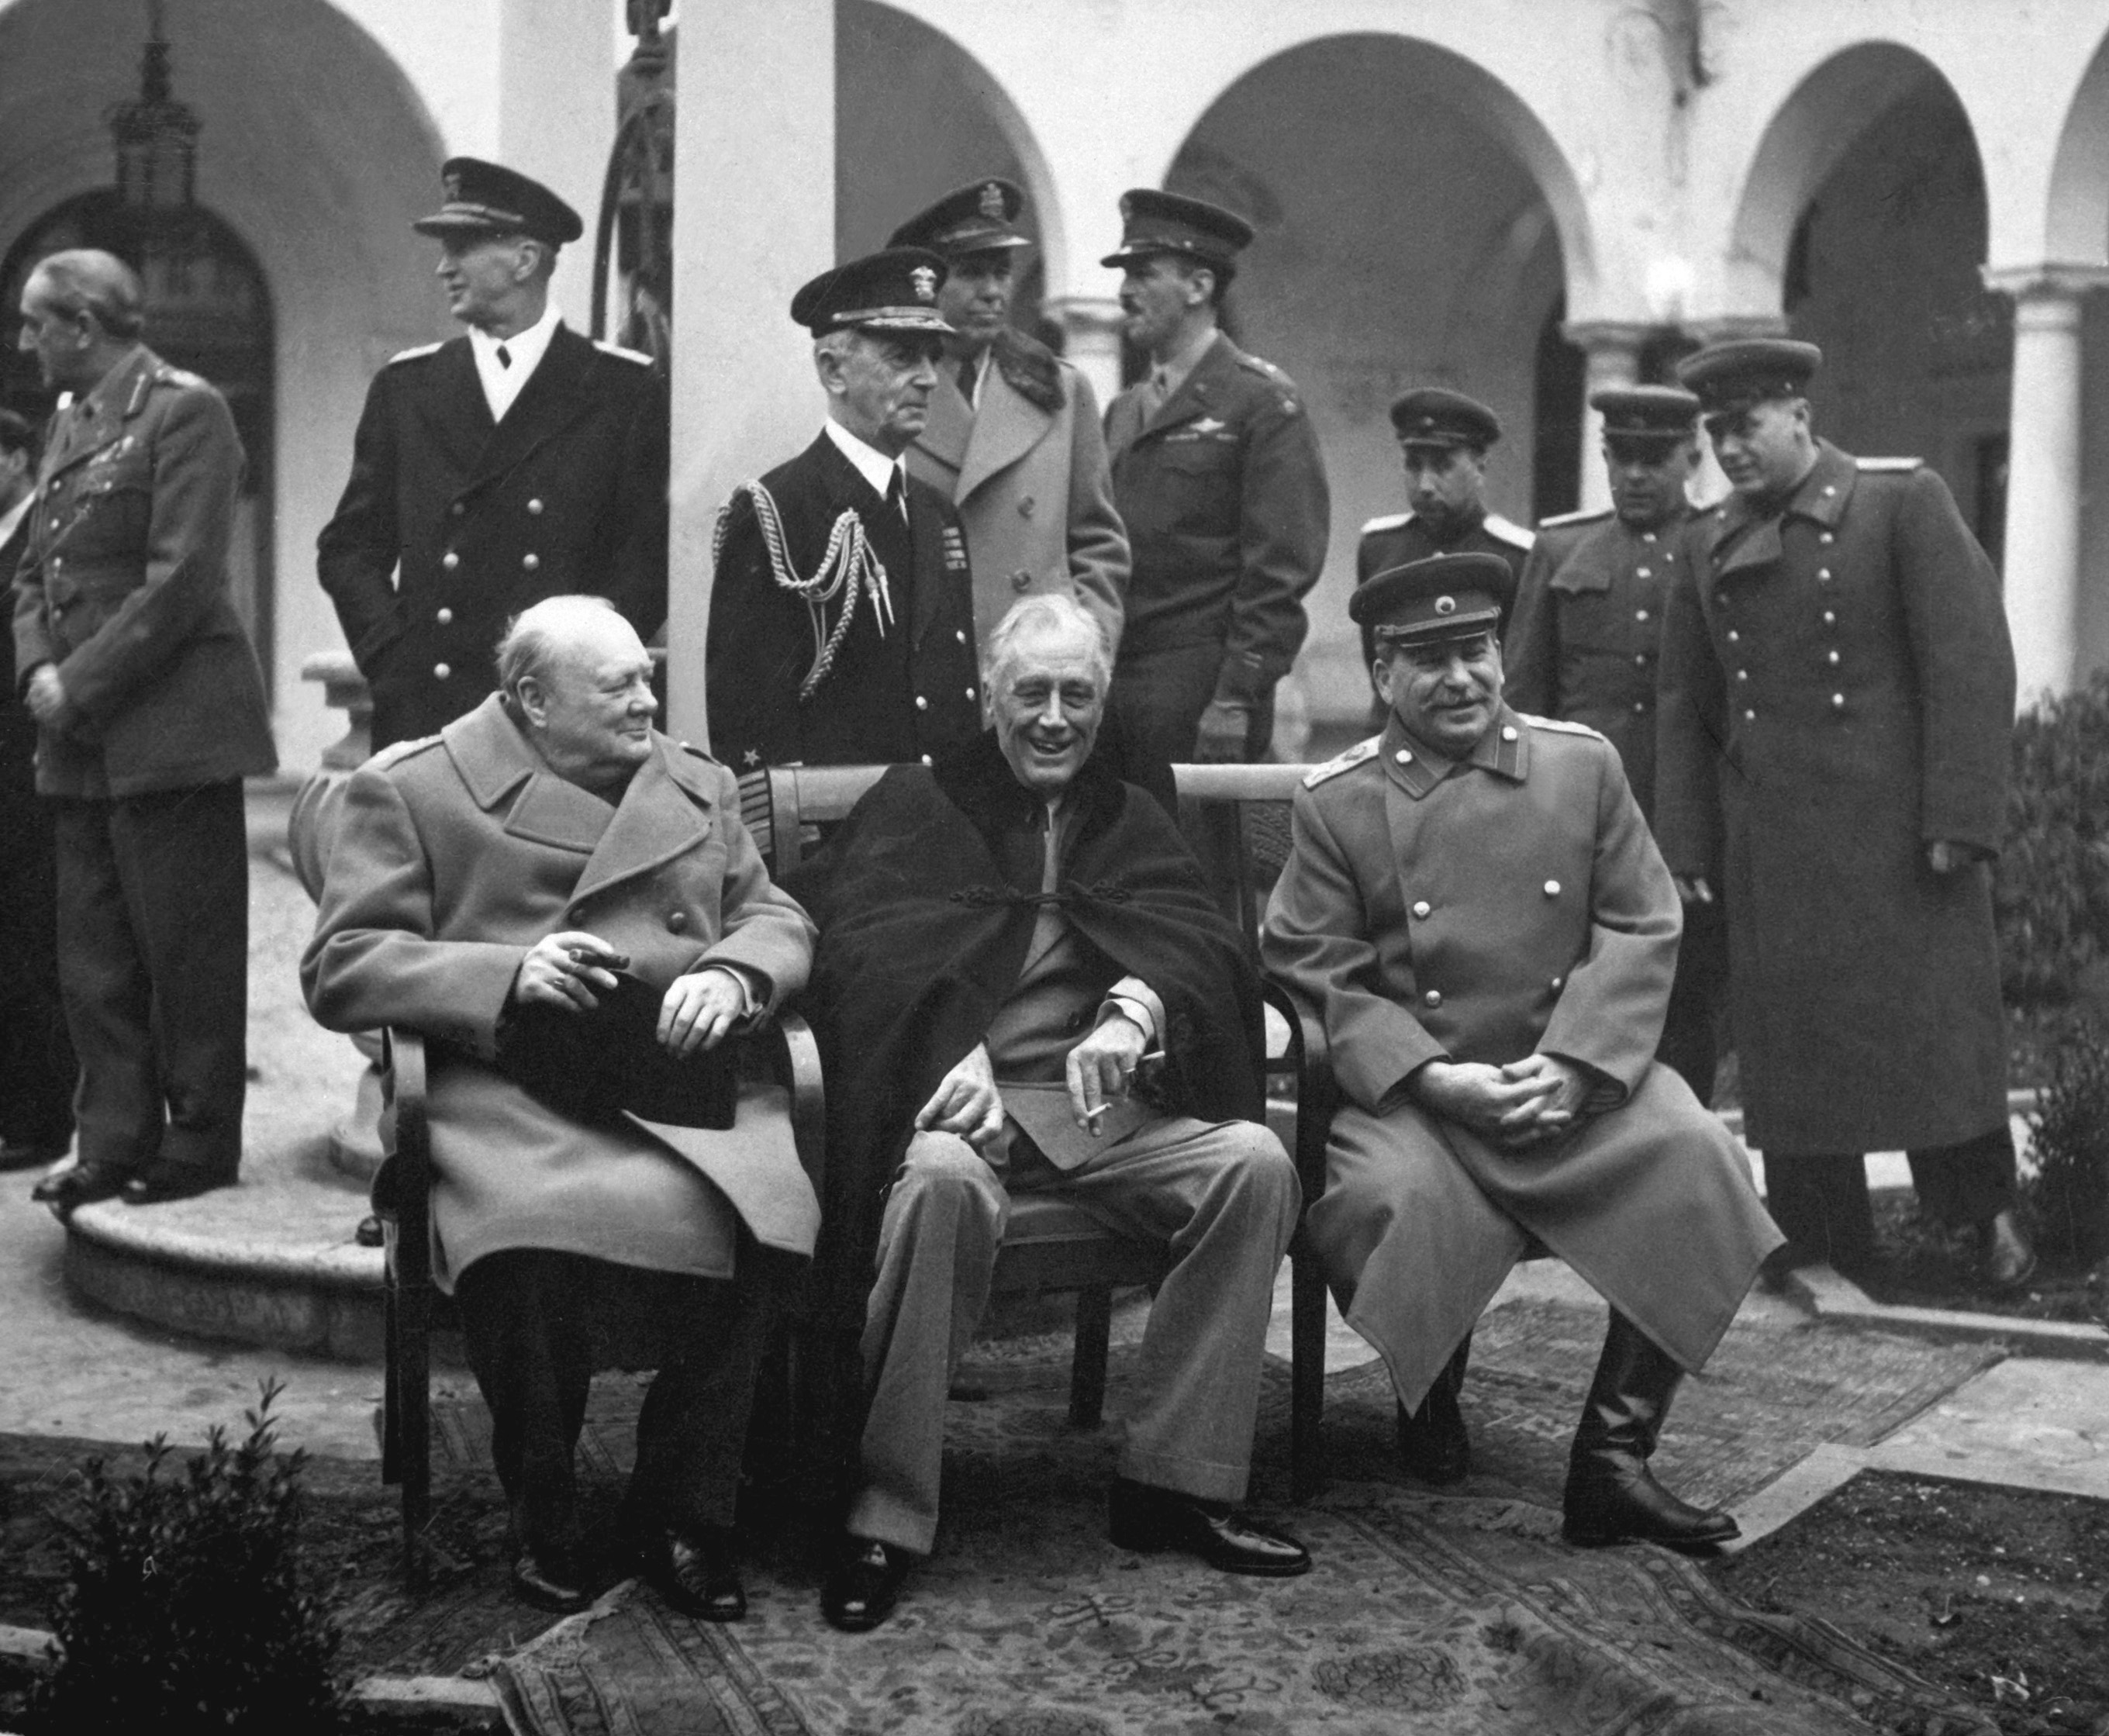 http://upload.wikimedia.org/wikipedia/commons/0/05/Yalta_Conference_%28Churchill%2C_Roosevelt%2C_Stalin%29_%28B%26W%29.jpg